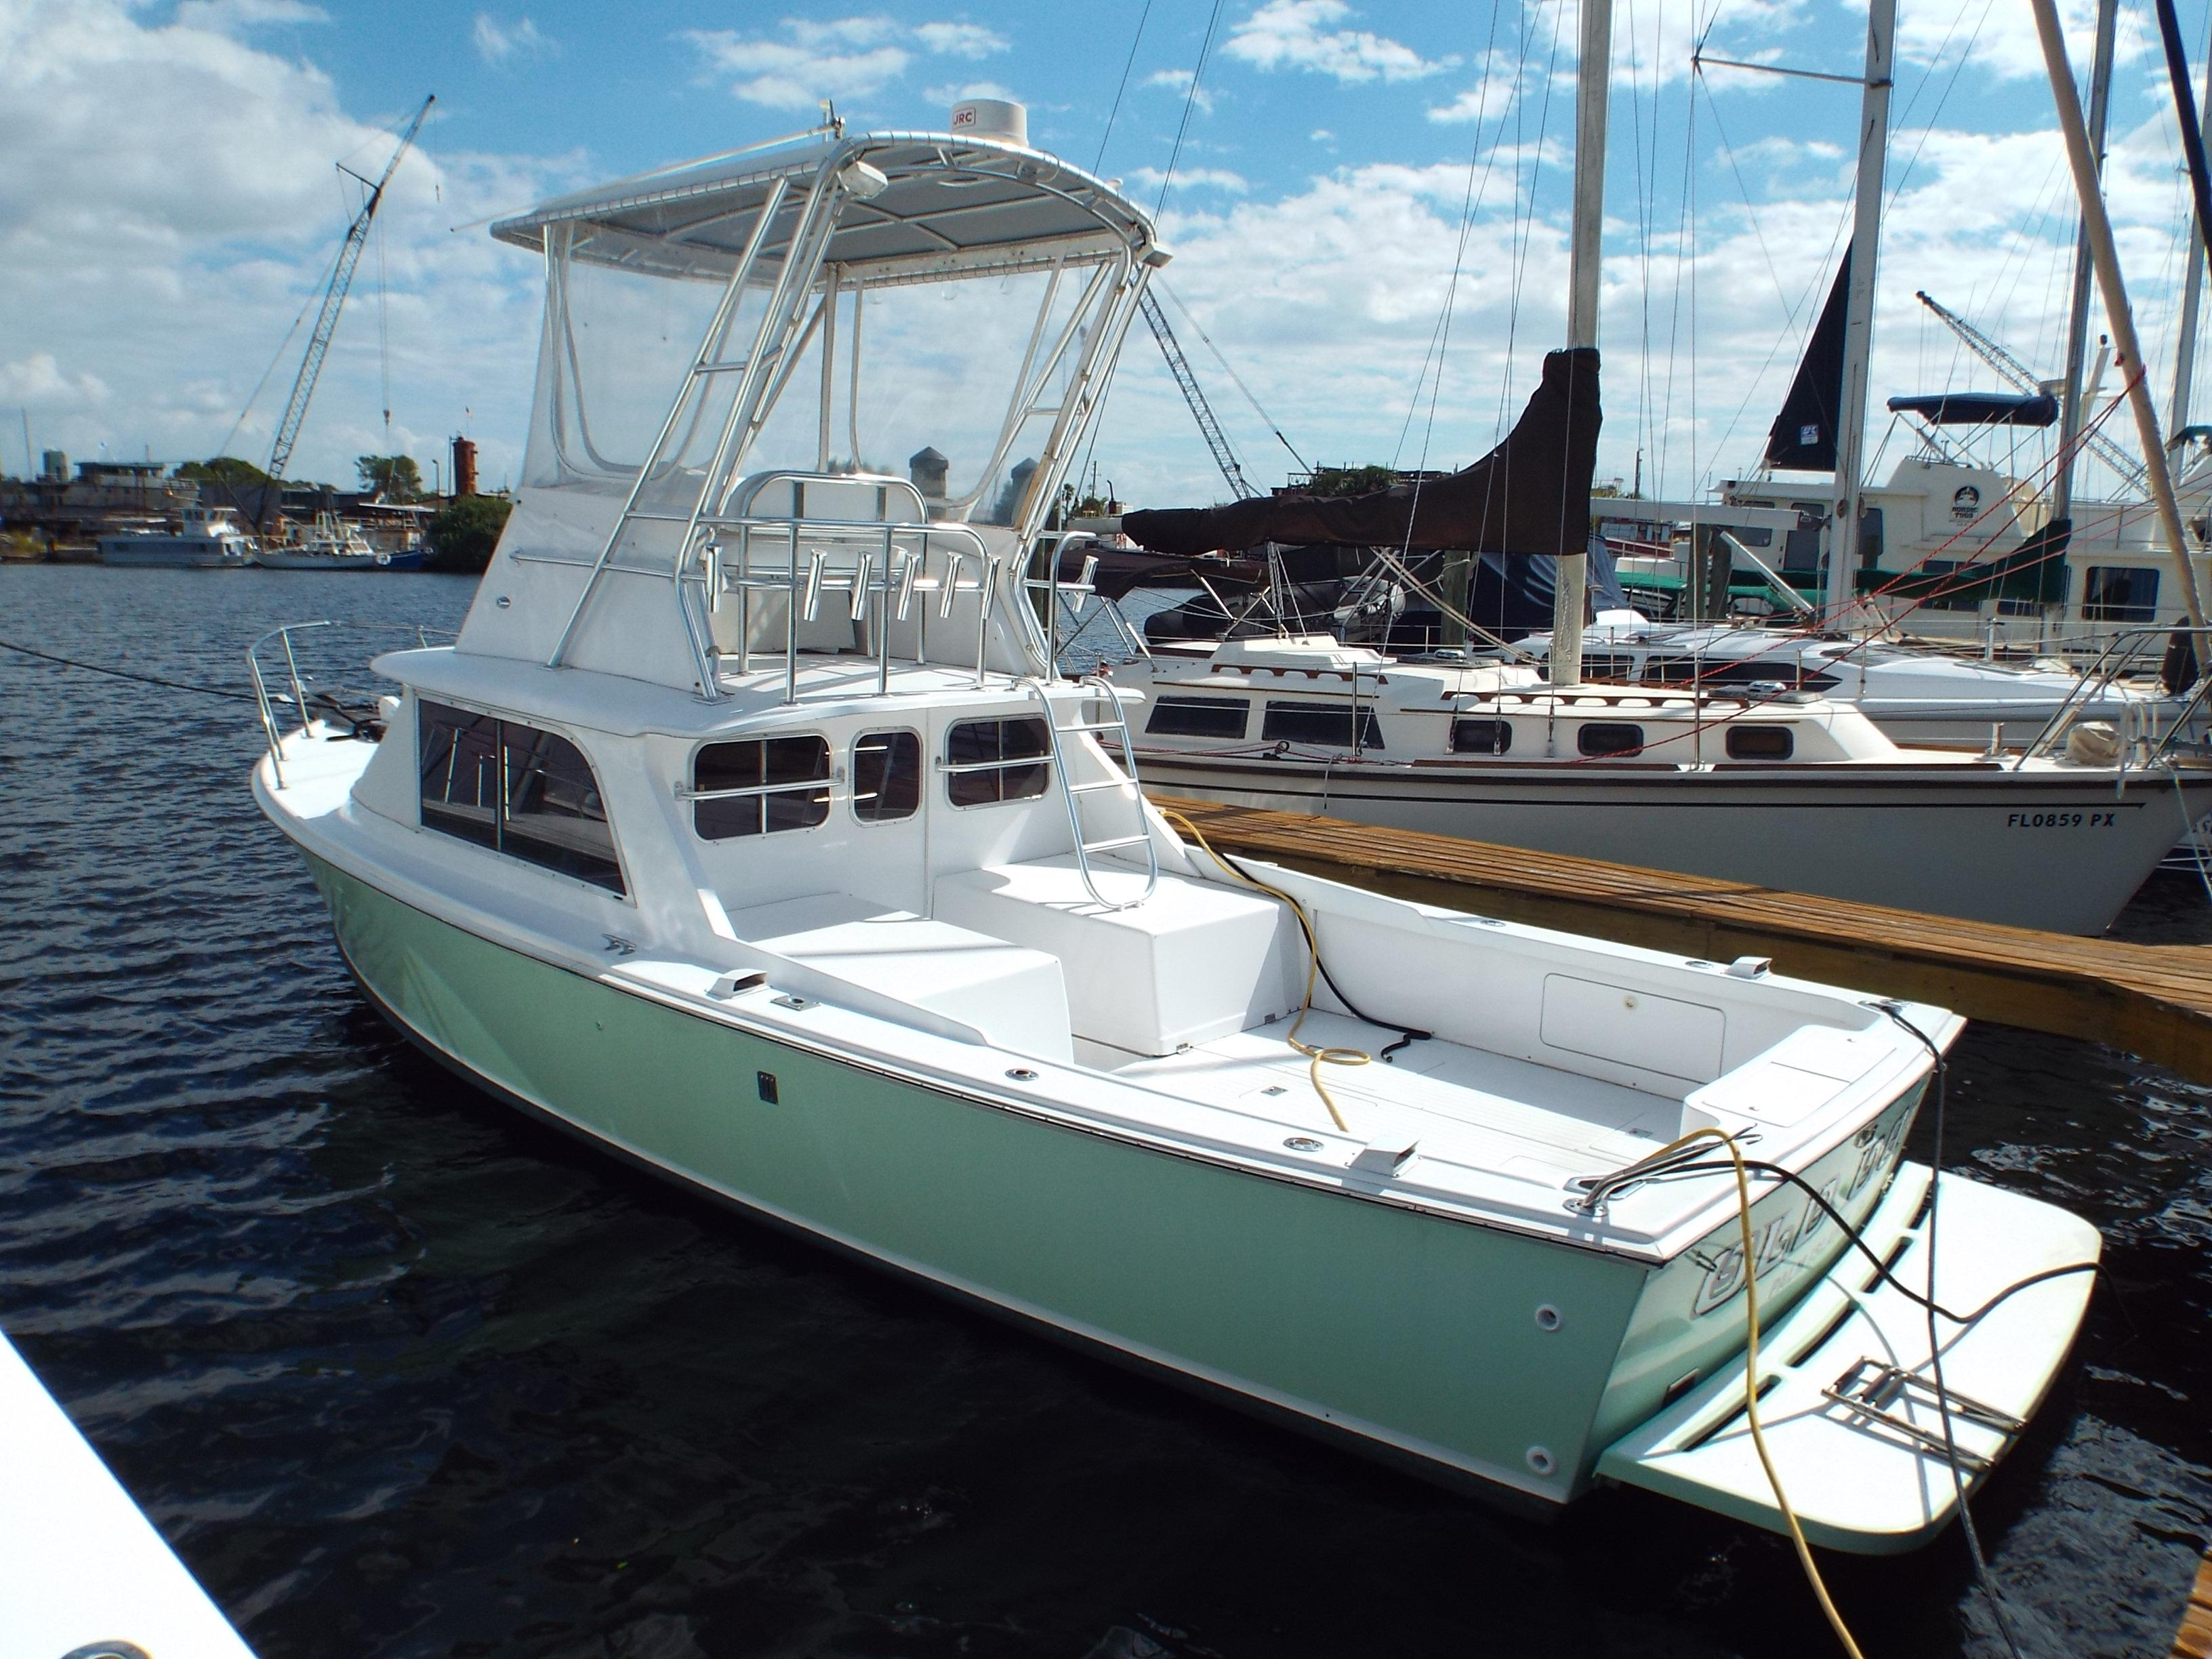 1972 Bertram 31 Power Boat For Sale Wwwyachtworldcom